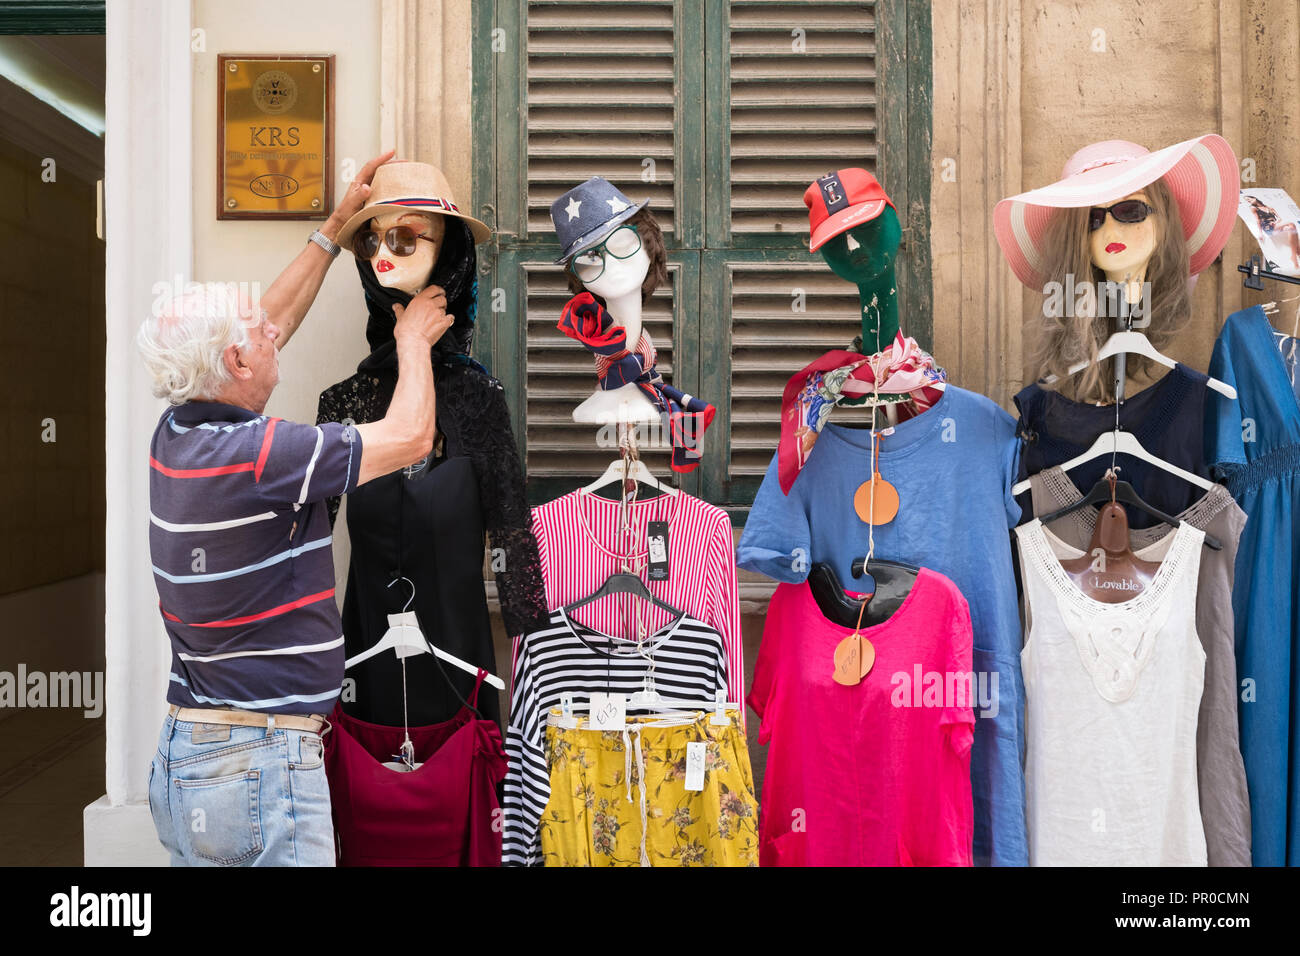 Maltese seller arranges clothes on a mannequin on the street in Valletta, Malta. - Stock Image